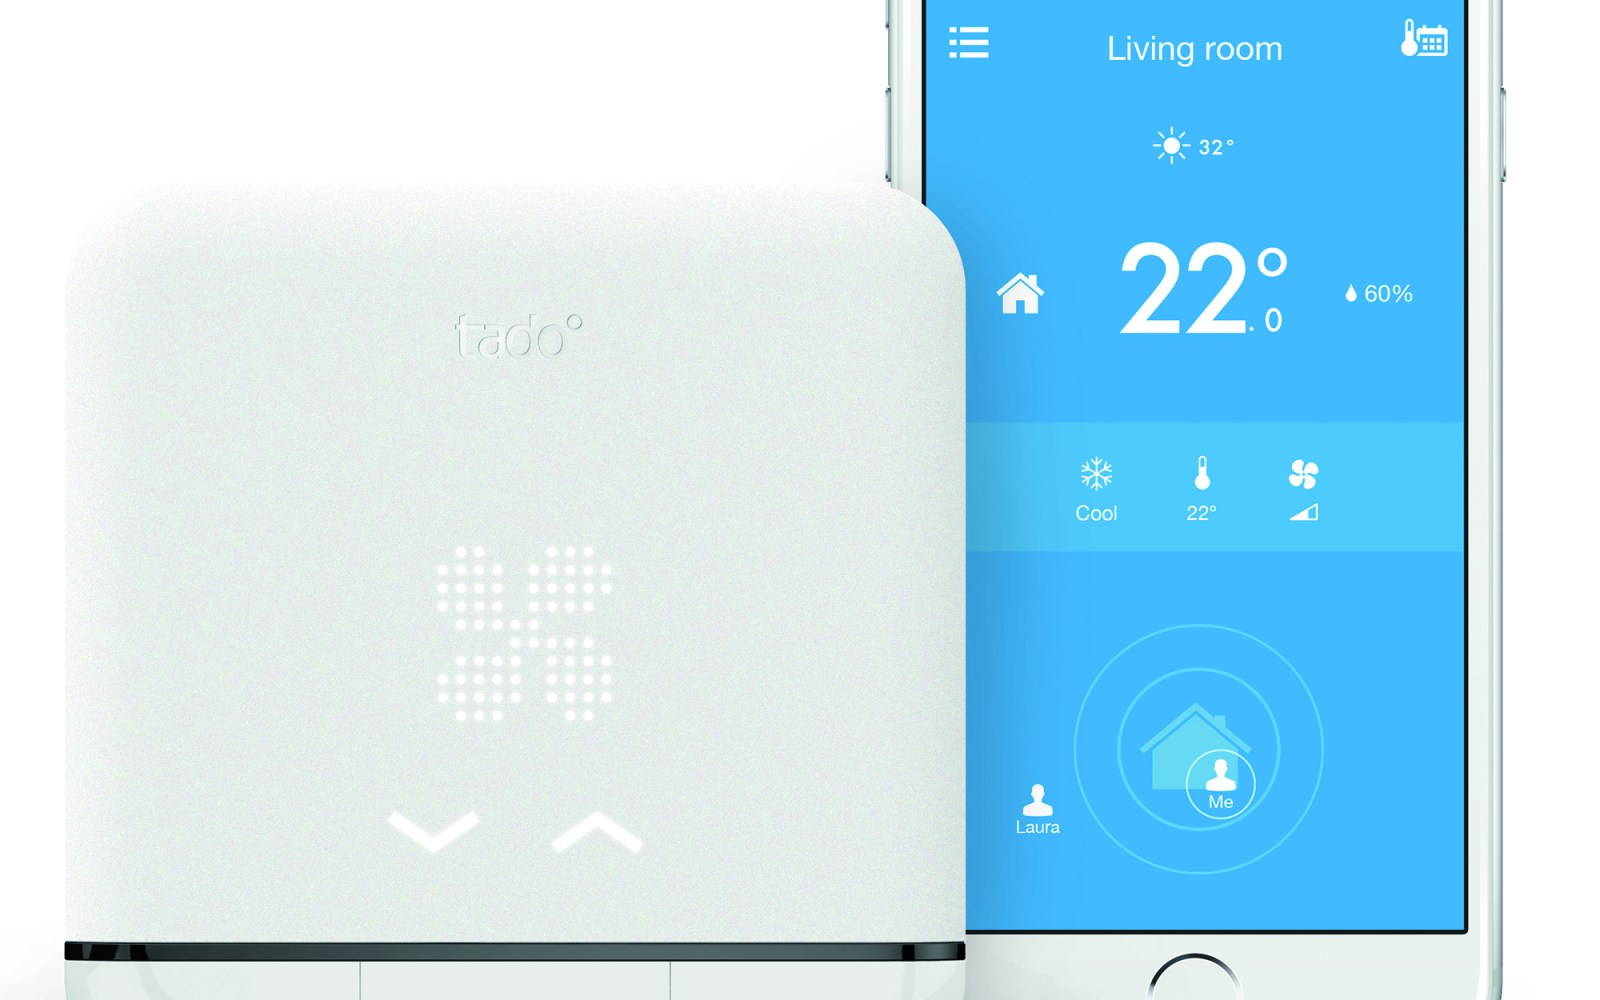 The Smart AC Control from tado° lets your iPhone control your existing air conditioner